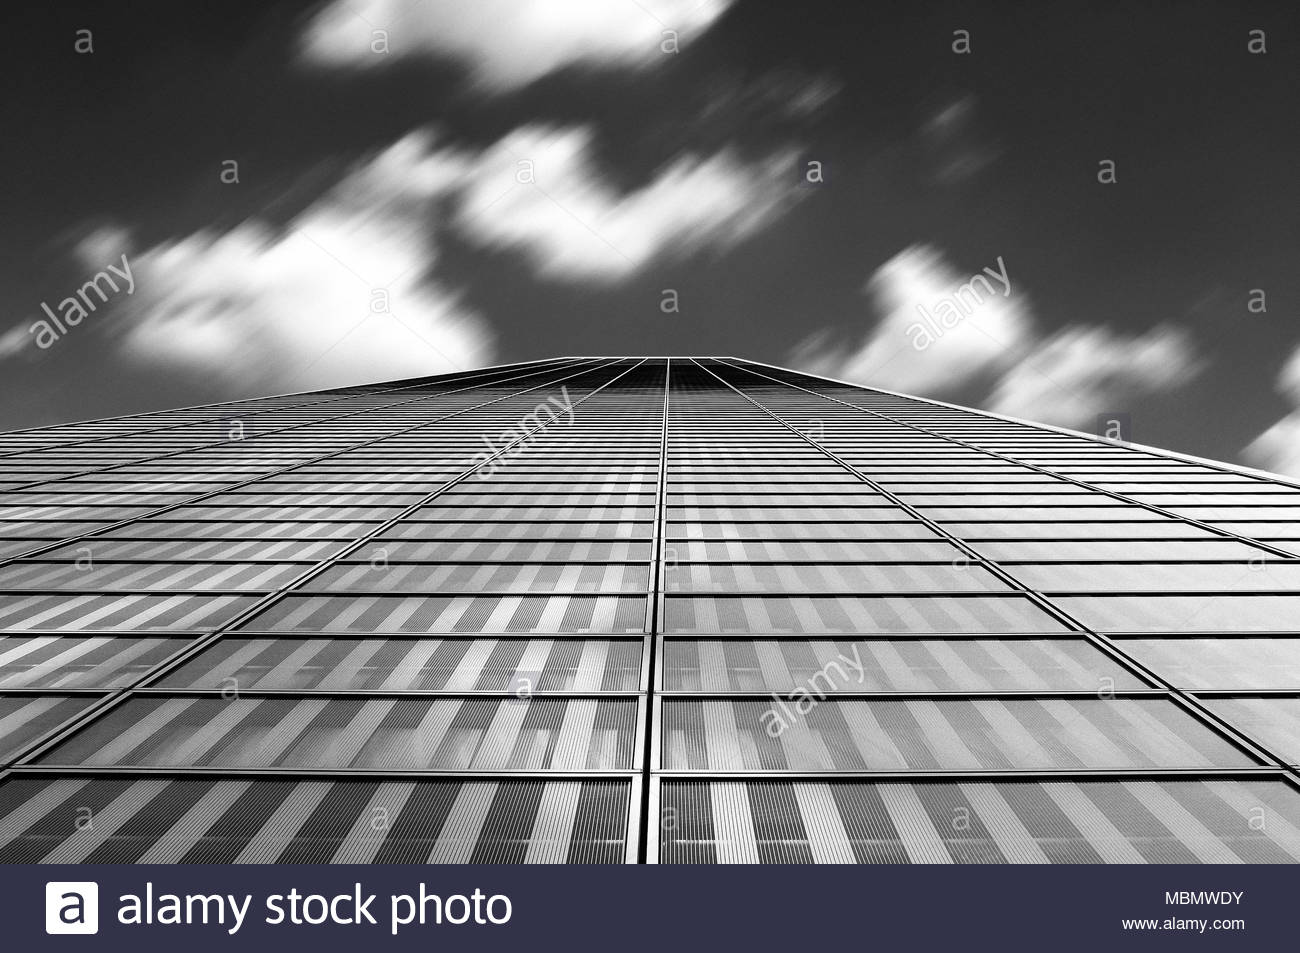 Modern architecture abstract with clouds in motion blur, dramatic minimalist black and white geometric picture - Stock Image